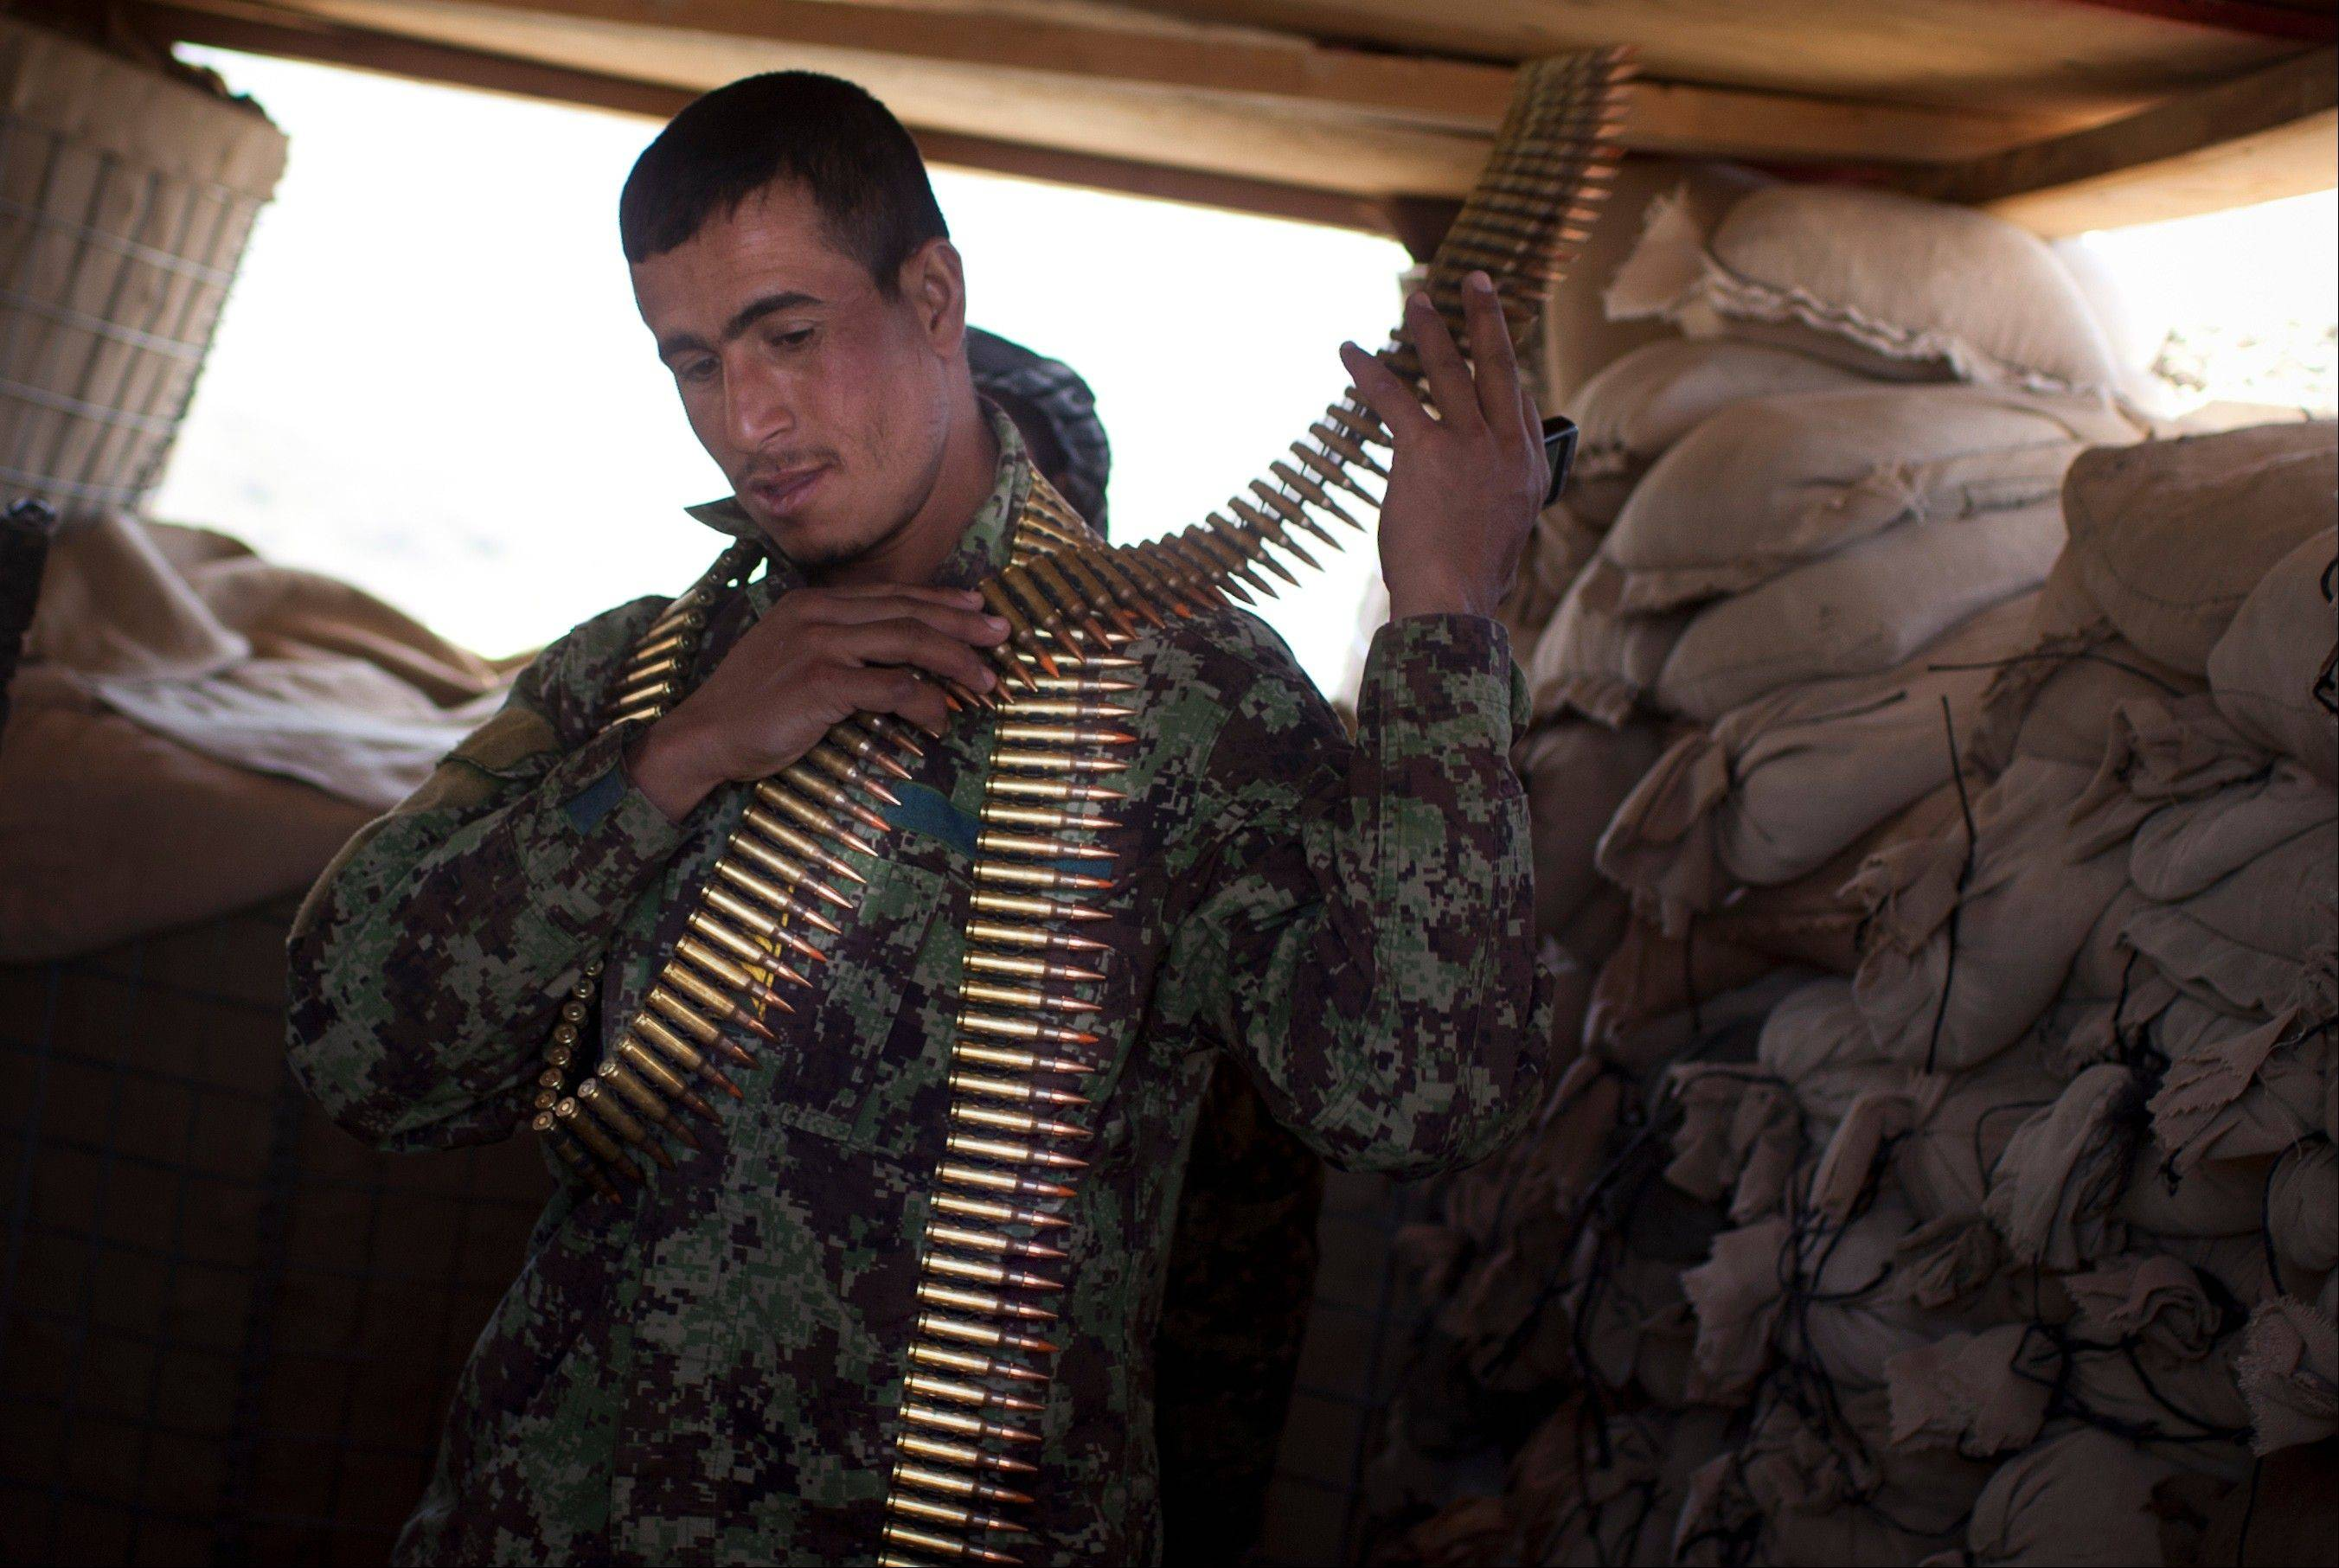 An Afghan National Army soldier puts on a bandoleer of bullets at his position at Chinari outpost in Logar province, east Afghanistan, on Tuesday. The months-old outpost was built after a police post at the base of the hill was attacked and destroyed by Taliban forces.